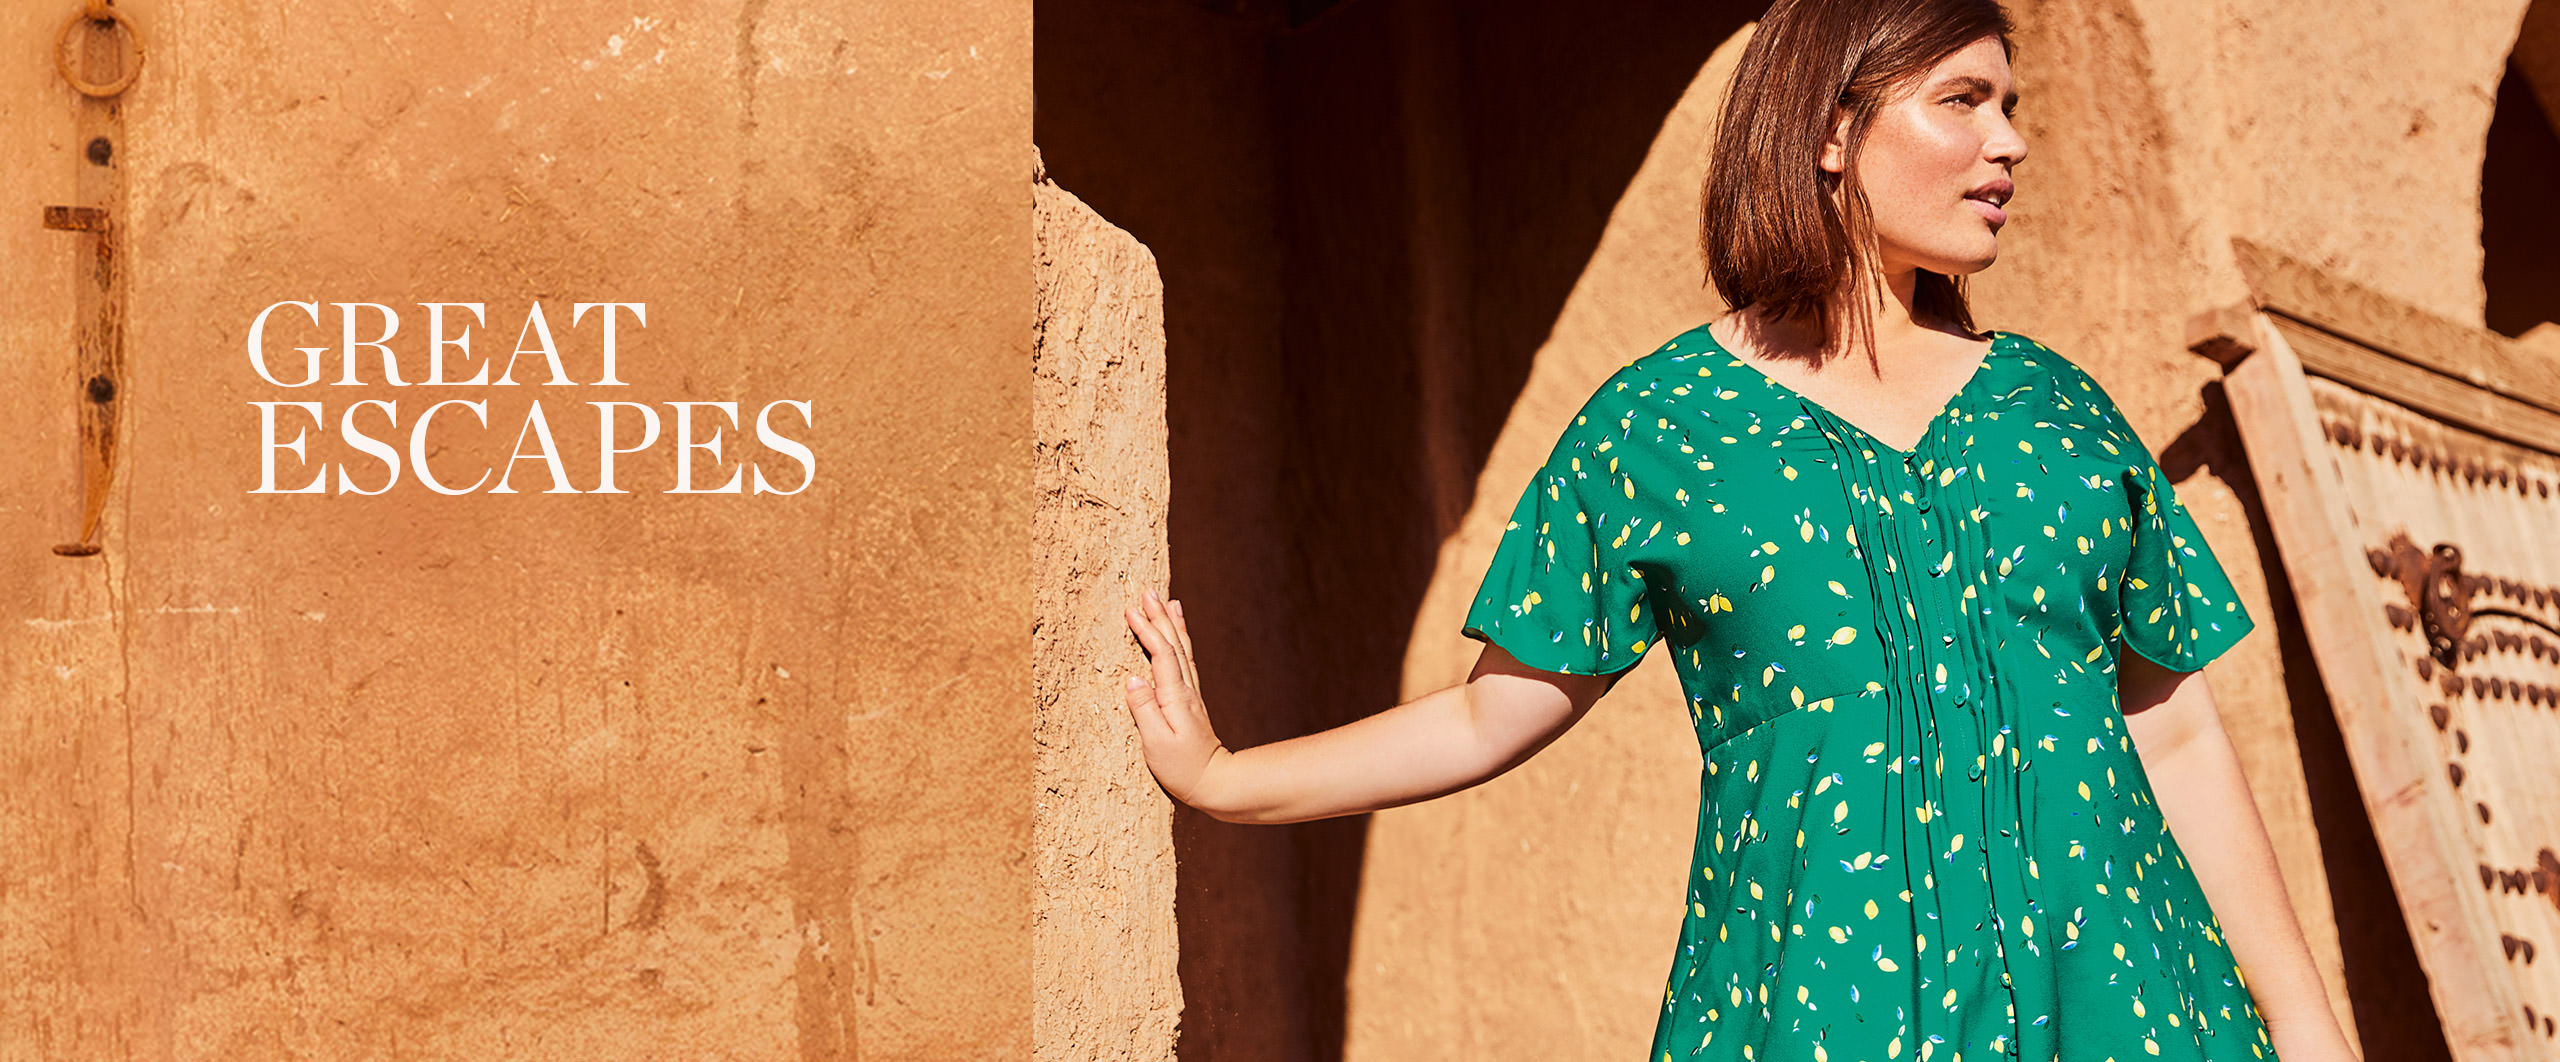 Great Escapes - Tick 'perfect holiday wardrobe' off your list. Discover More